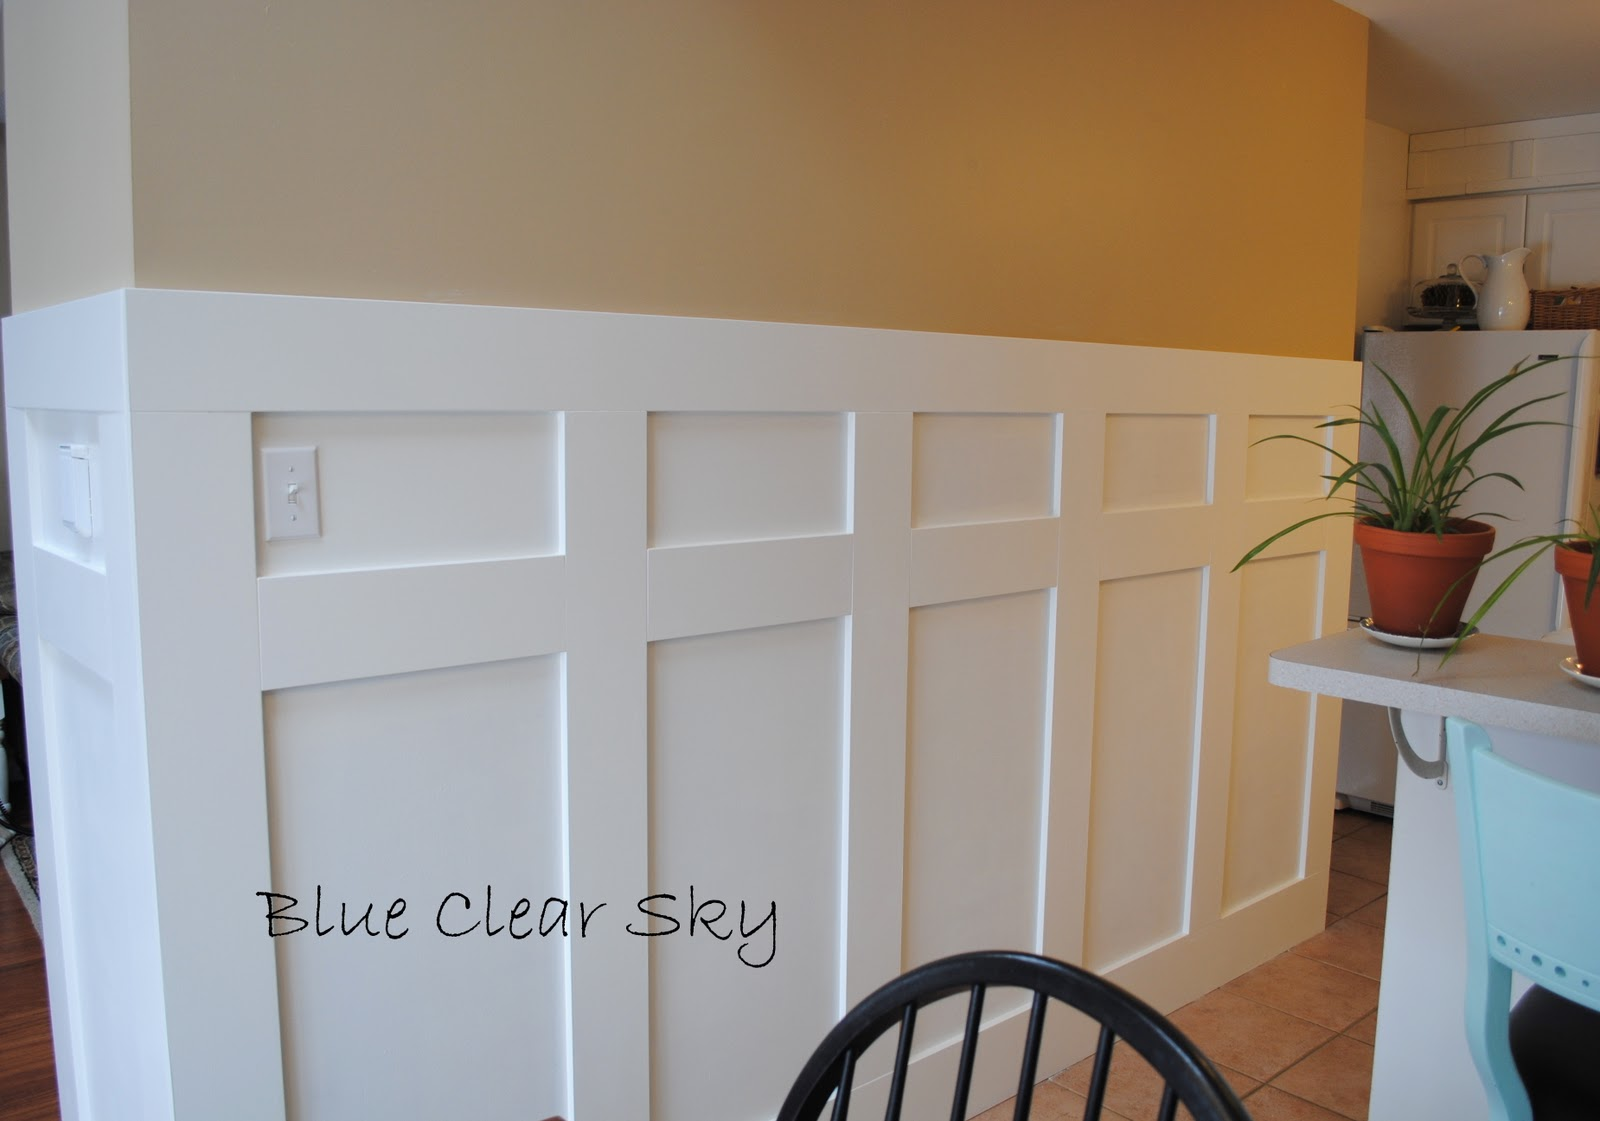 Chair rail paint ideas nursery - Which Wainscoting Suits Your Room Best Sunlit Spaces